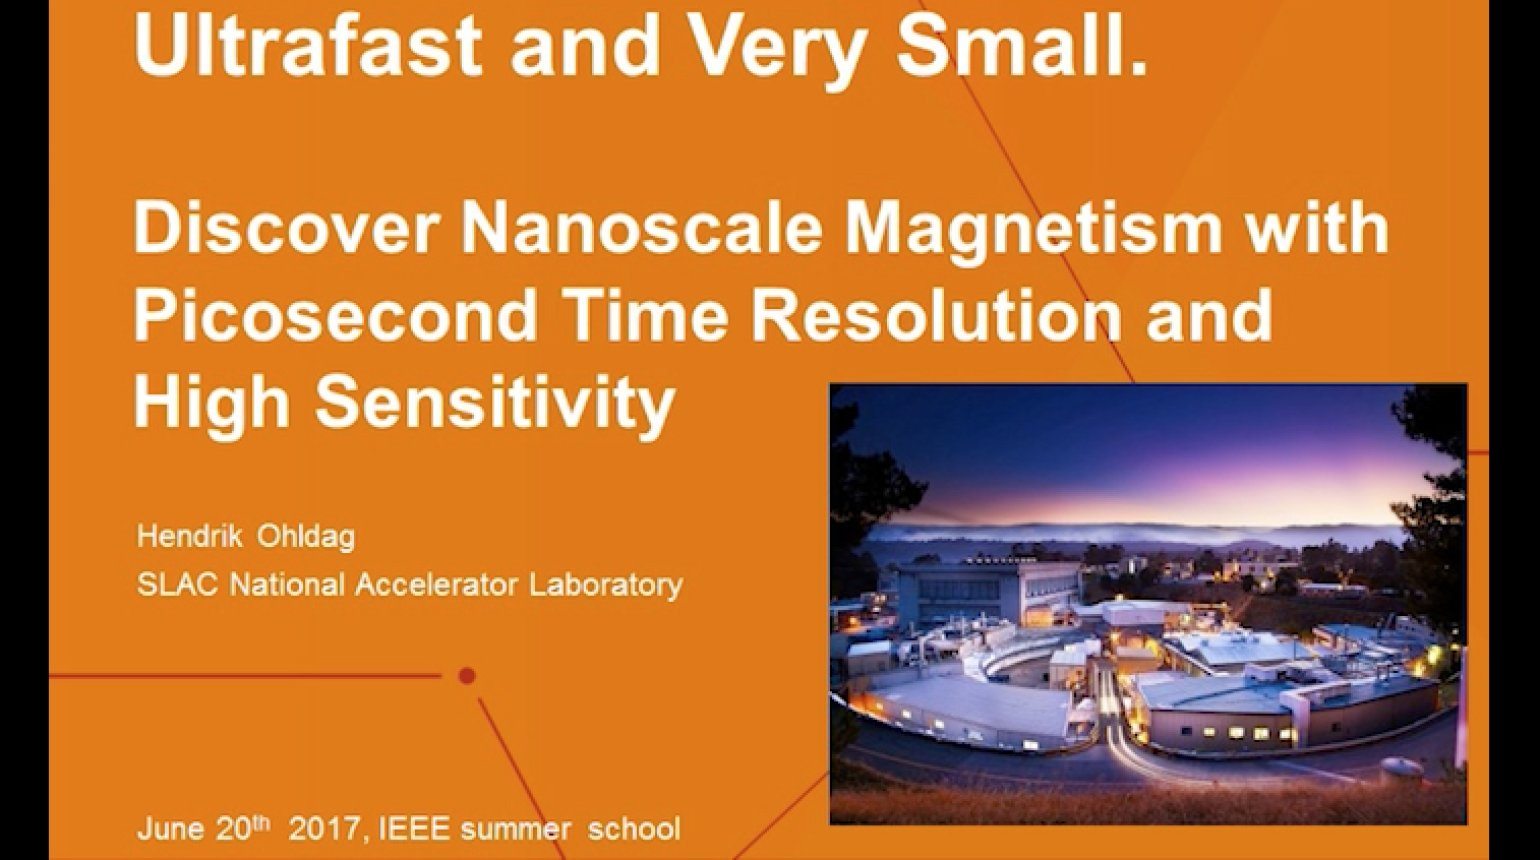 Nanoscale Magnetism with Picosecond Time Resolution and High Sensitivity - Hendrik Ohldag - IEEE Magnetics Distinguished Lecture